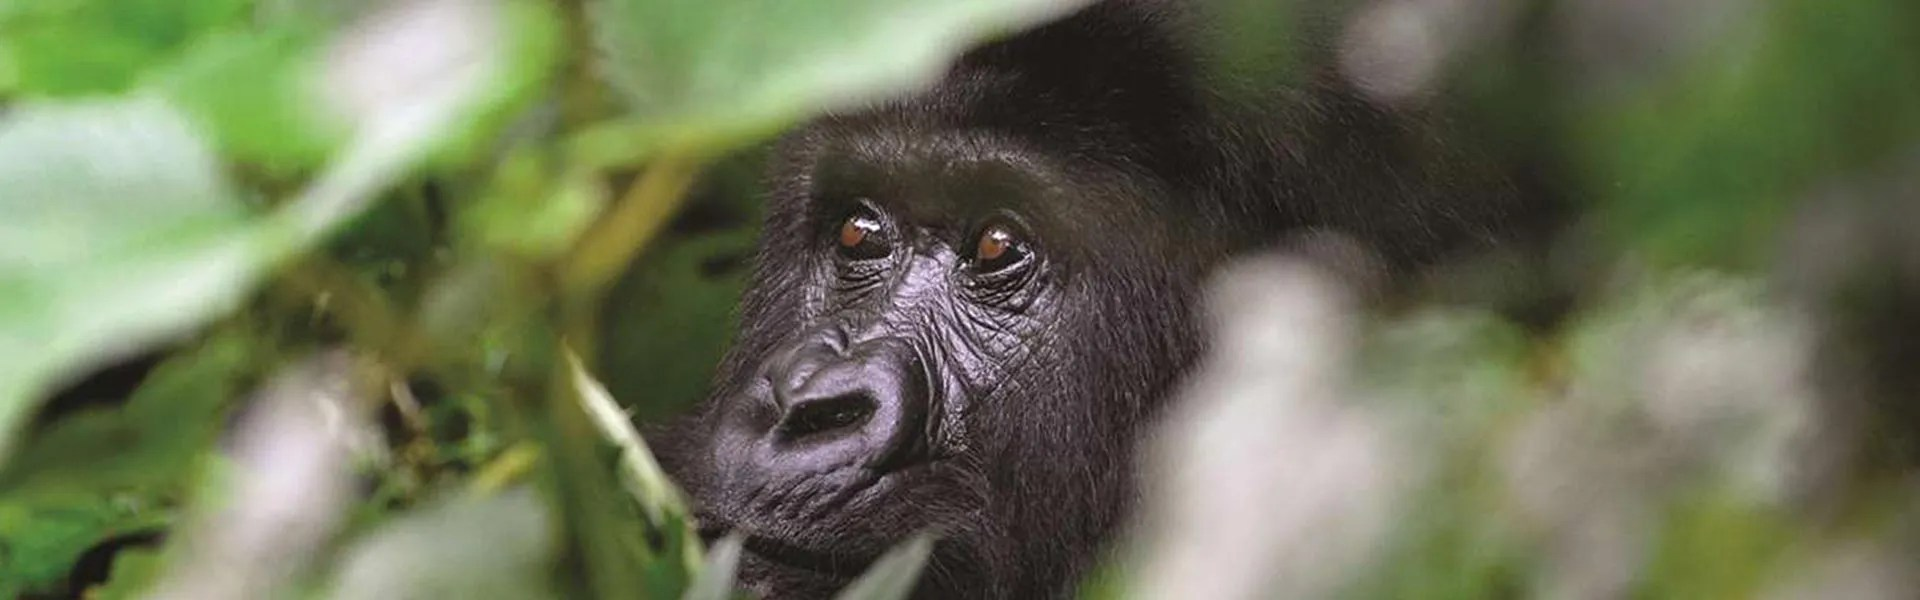 Nkuringo Safaris - Uganda Safaris, Rwanda Safaris & Gorilla Trekking Safaris, Honeymoon Safaris